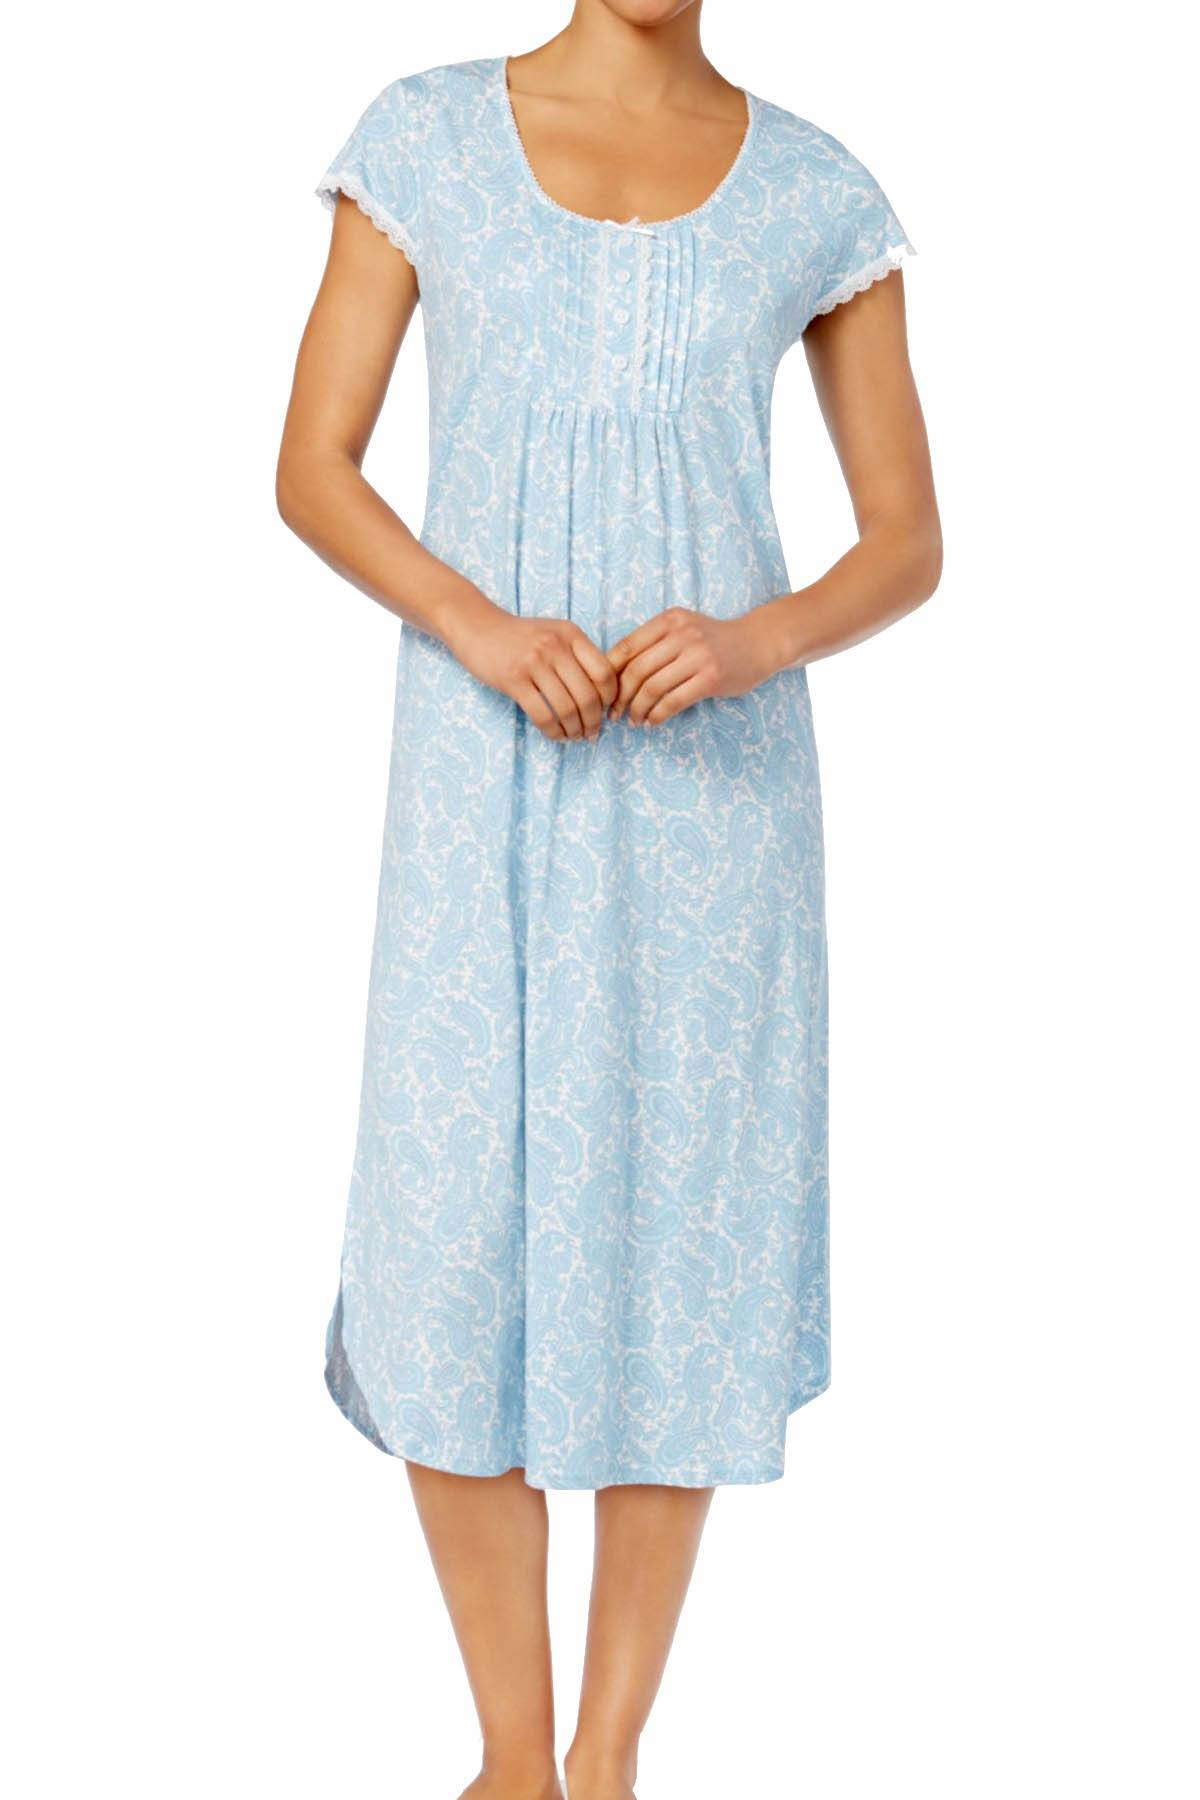 Miss Elaine Blue/Lavender Paisley-Print Tucked-Front Knit Nightgown